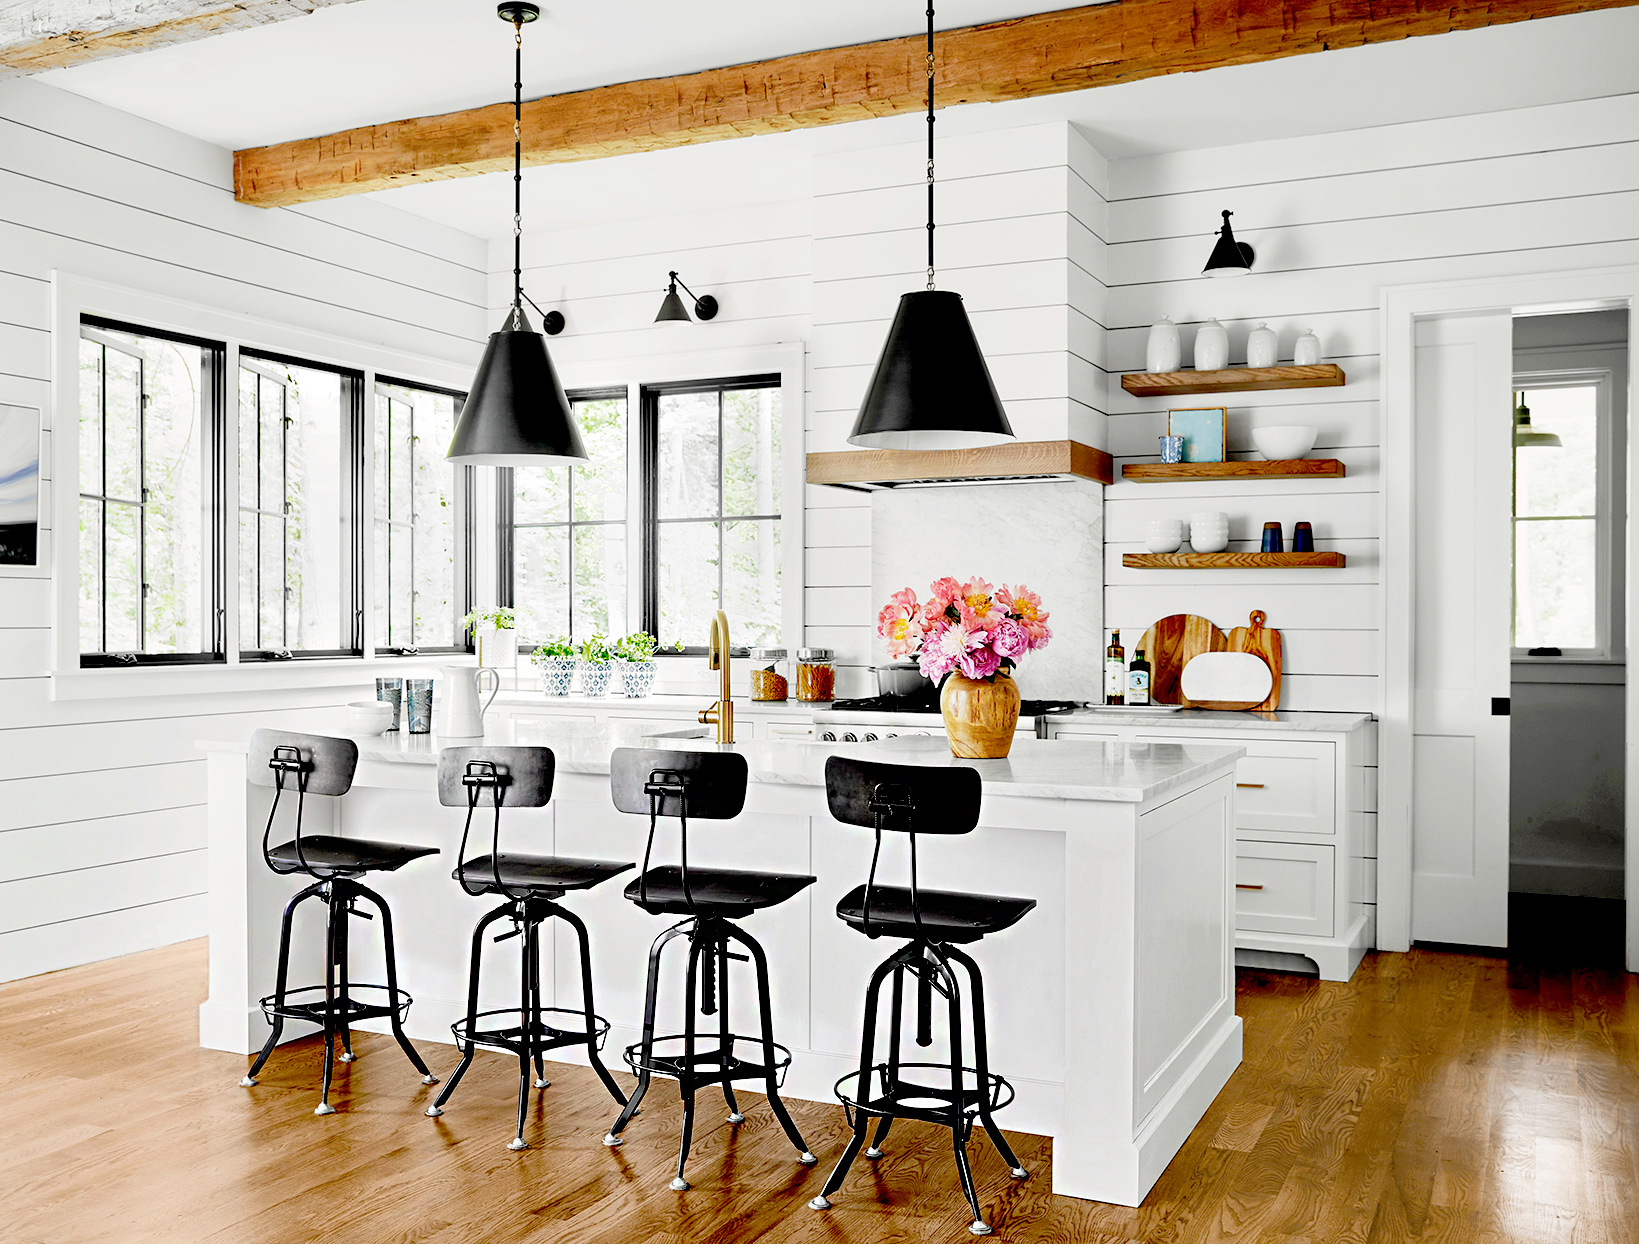 23 Farmhouse Kitchen Ideas To Steal Better Homes Gardens